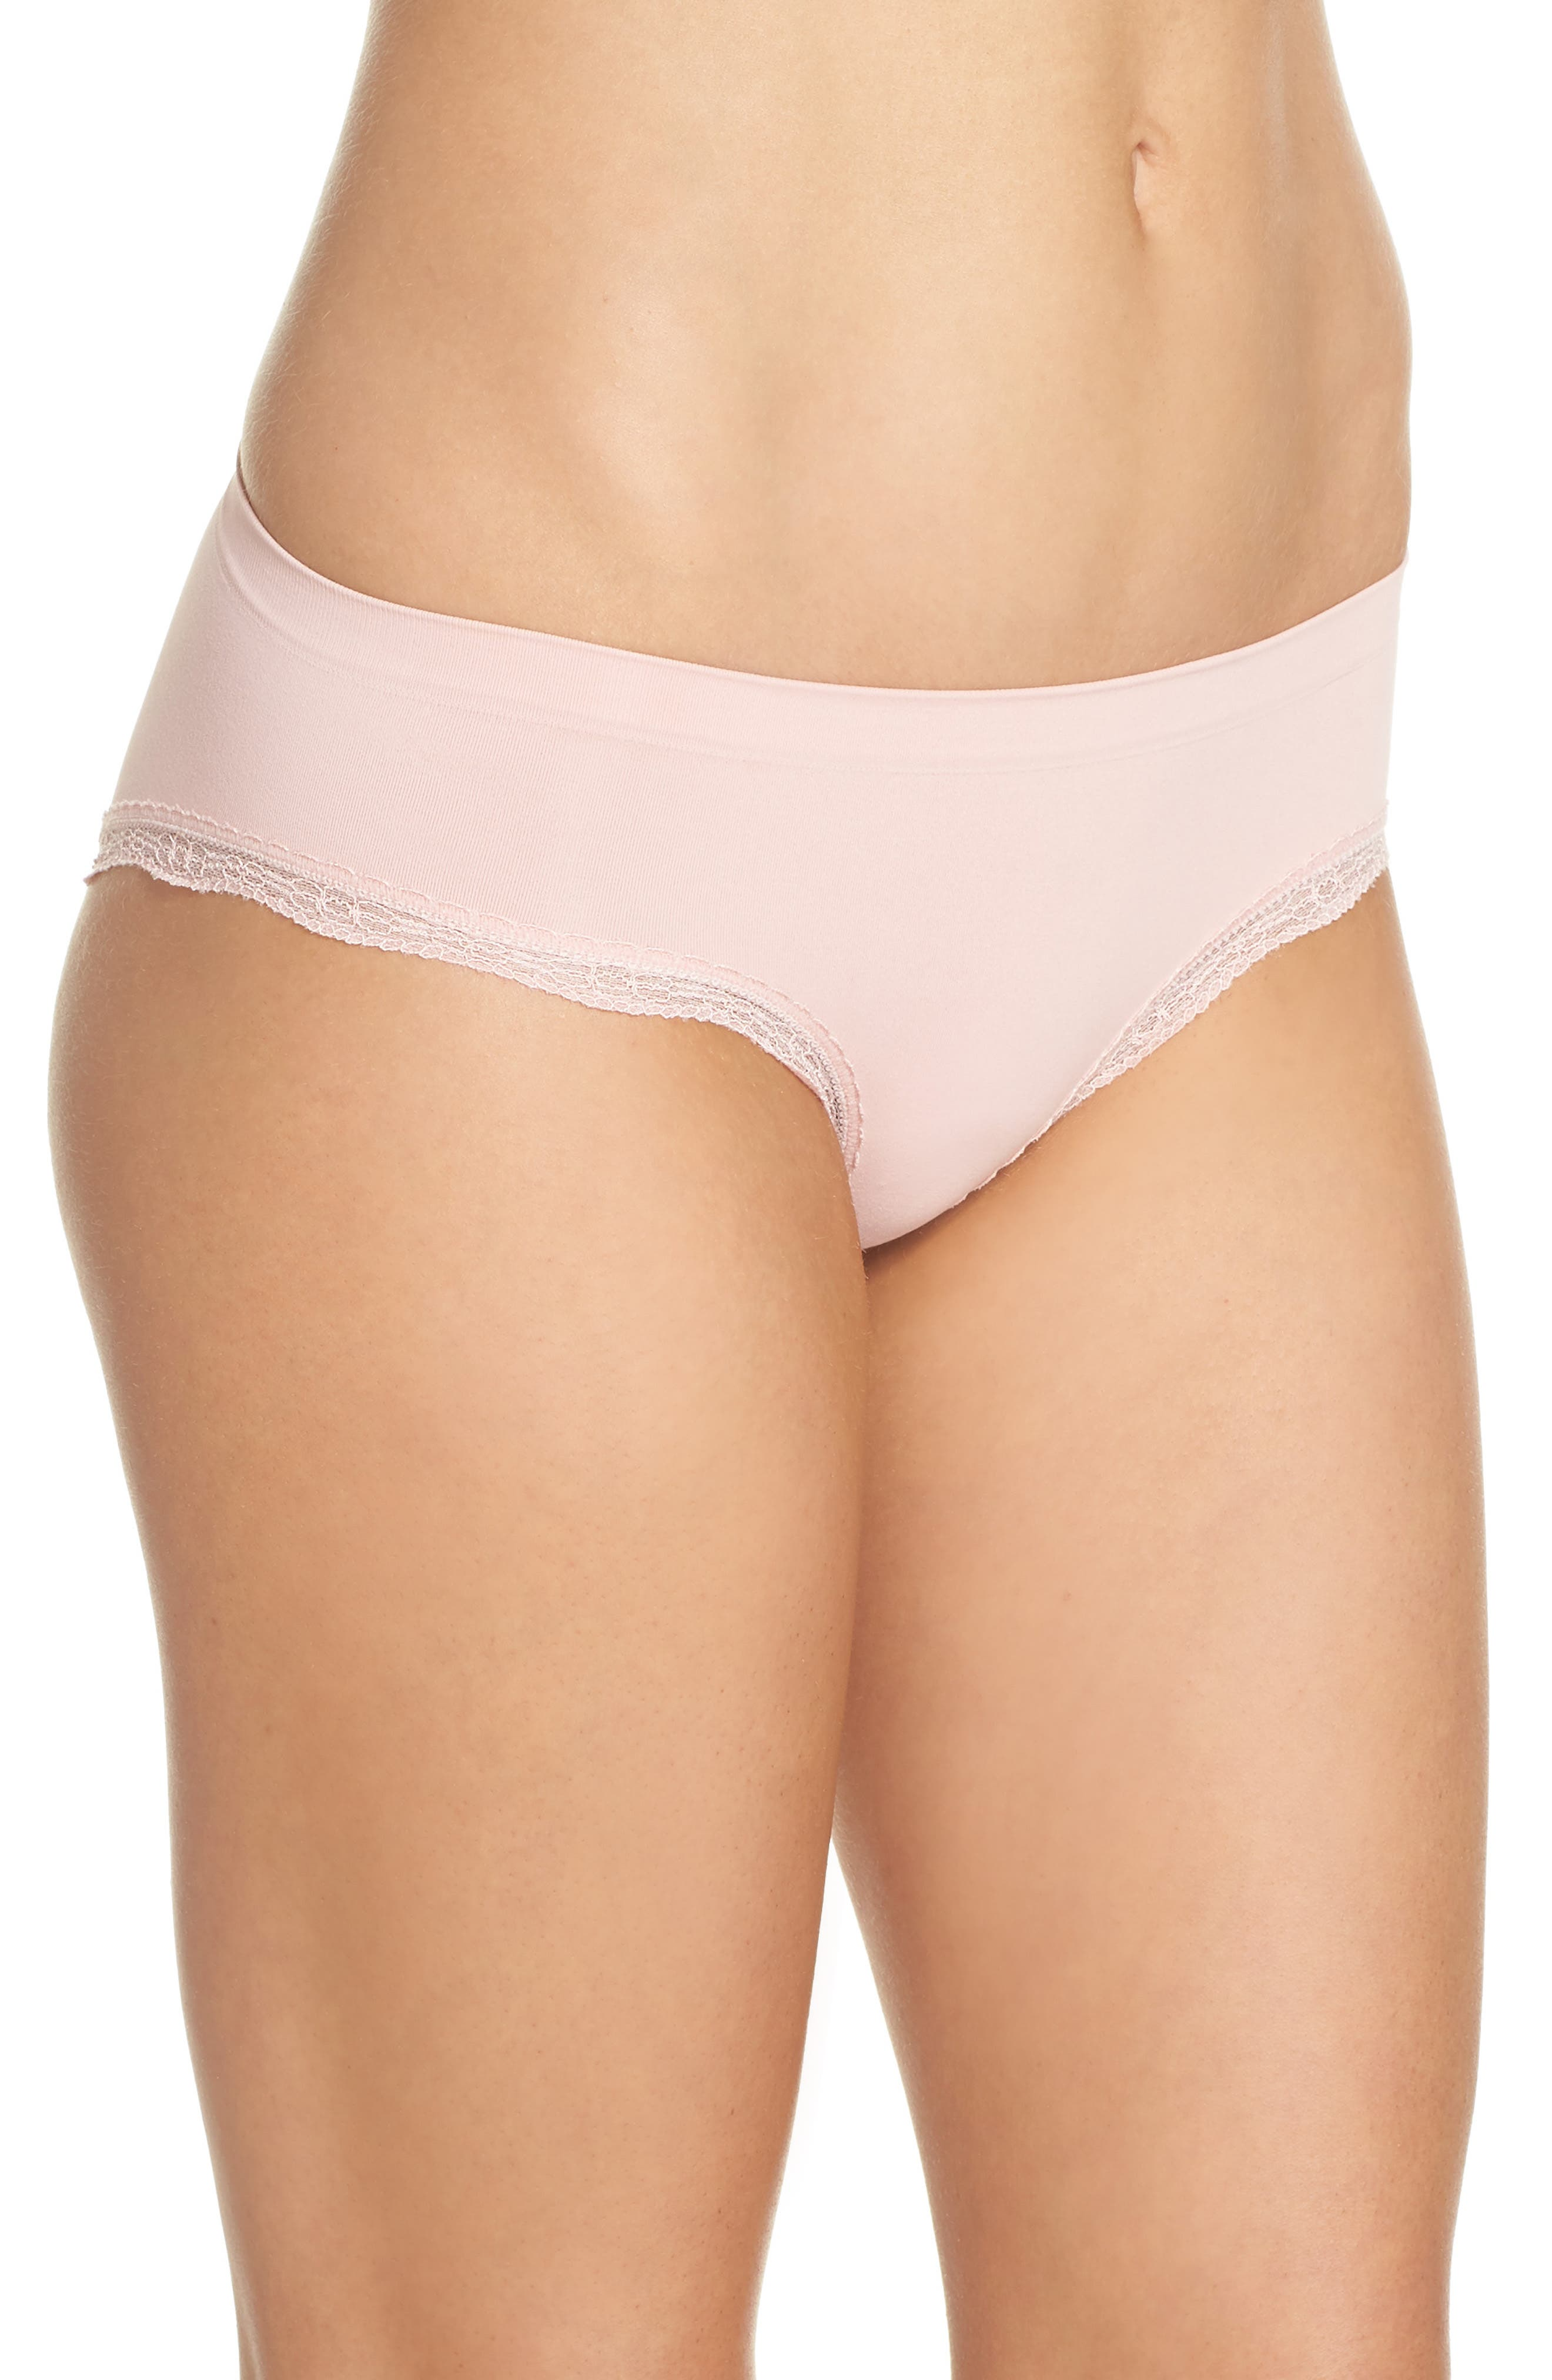 Lace Trim Seamless Hipster Briefs,                             Alternate thumbnail 3, color,                             Pink Silver